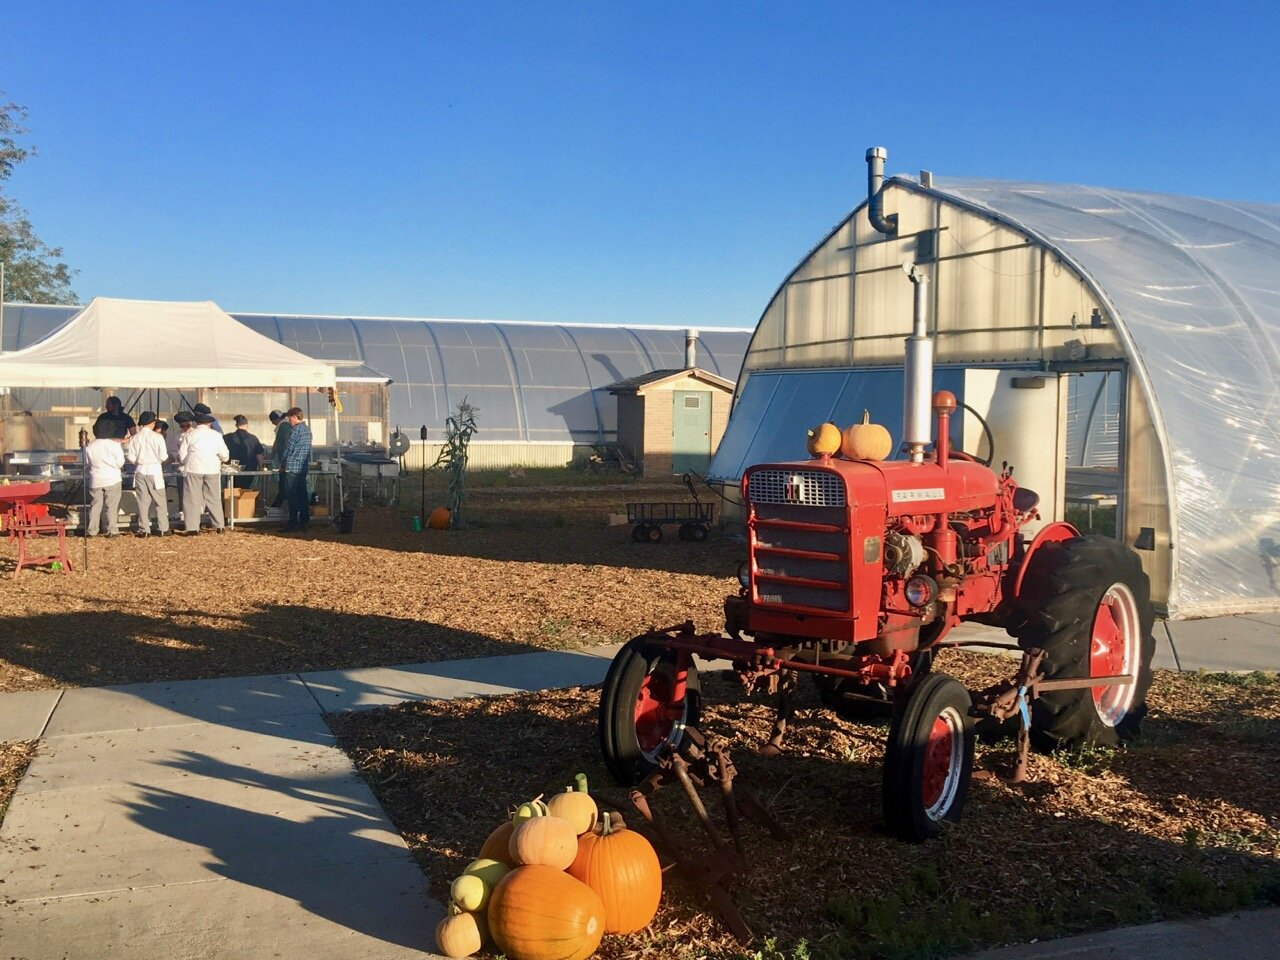 Looking at the farm site with a tractor in the foreground and greenhouse in the background